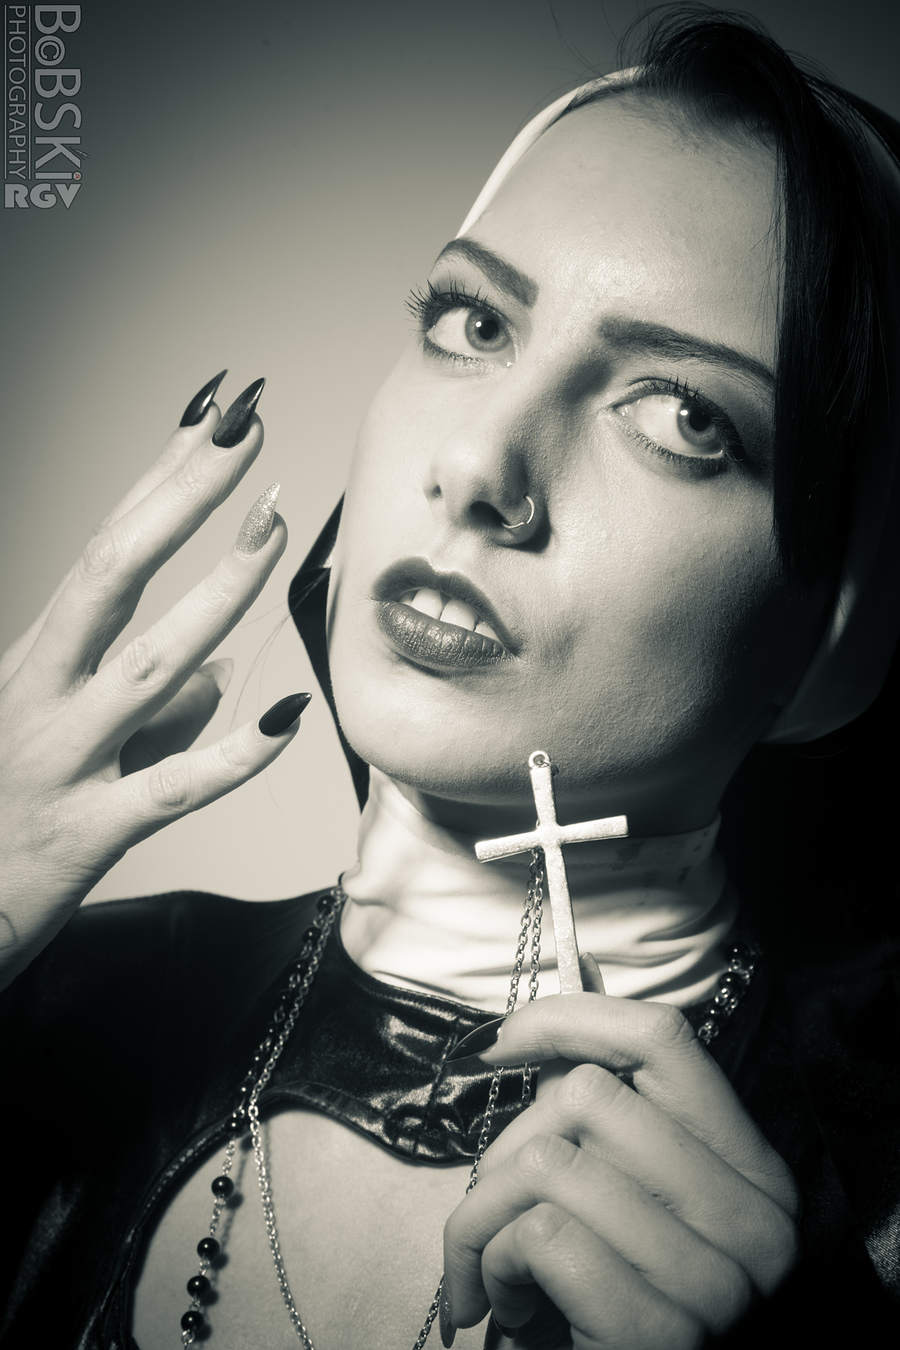 The Cross won't save me! / Photography by BobskiRGV, Post processing by BobskiRGV / Uploaded 6th October 2014 @ 11:41 PM